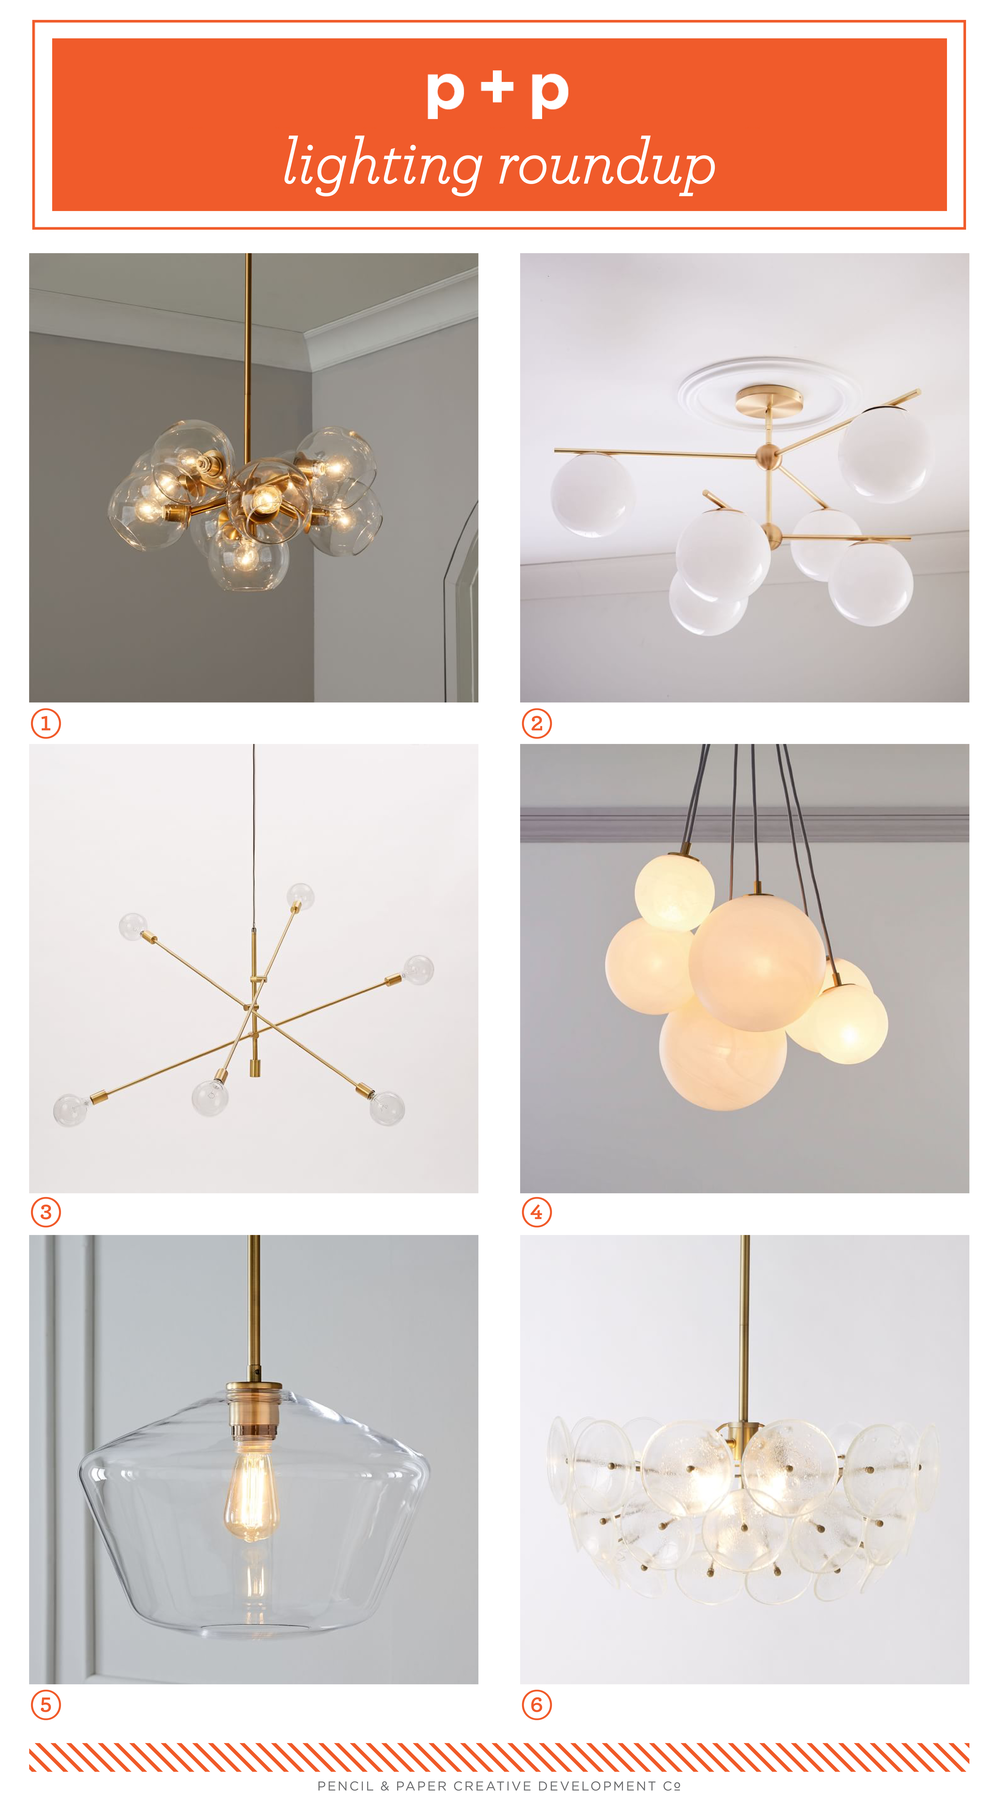 01. Staggered Glass Chandelier / 02. Sphere + Stem Chandelier and Flushmount / 03. Mobile Chandelier – Grand / 04. Zenith Chandelier / 05. Sculptural Glass Pendant / 06. Glass Disc Chandelier and Flushmount